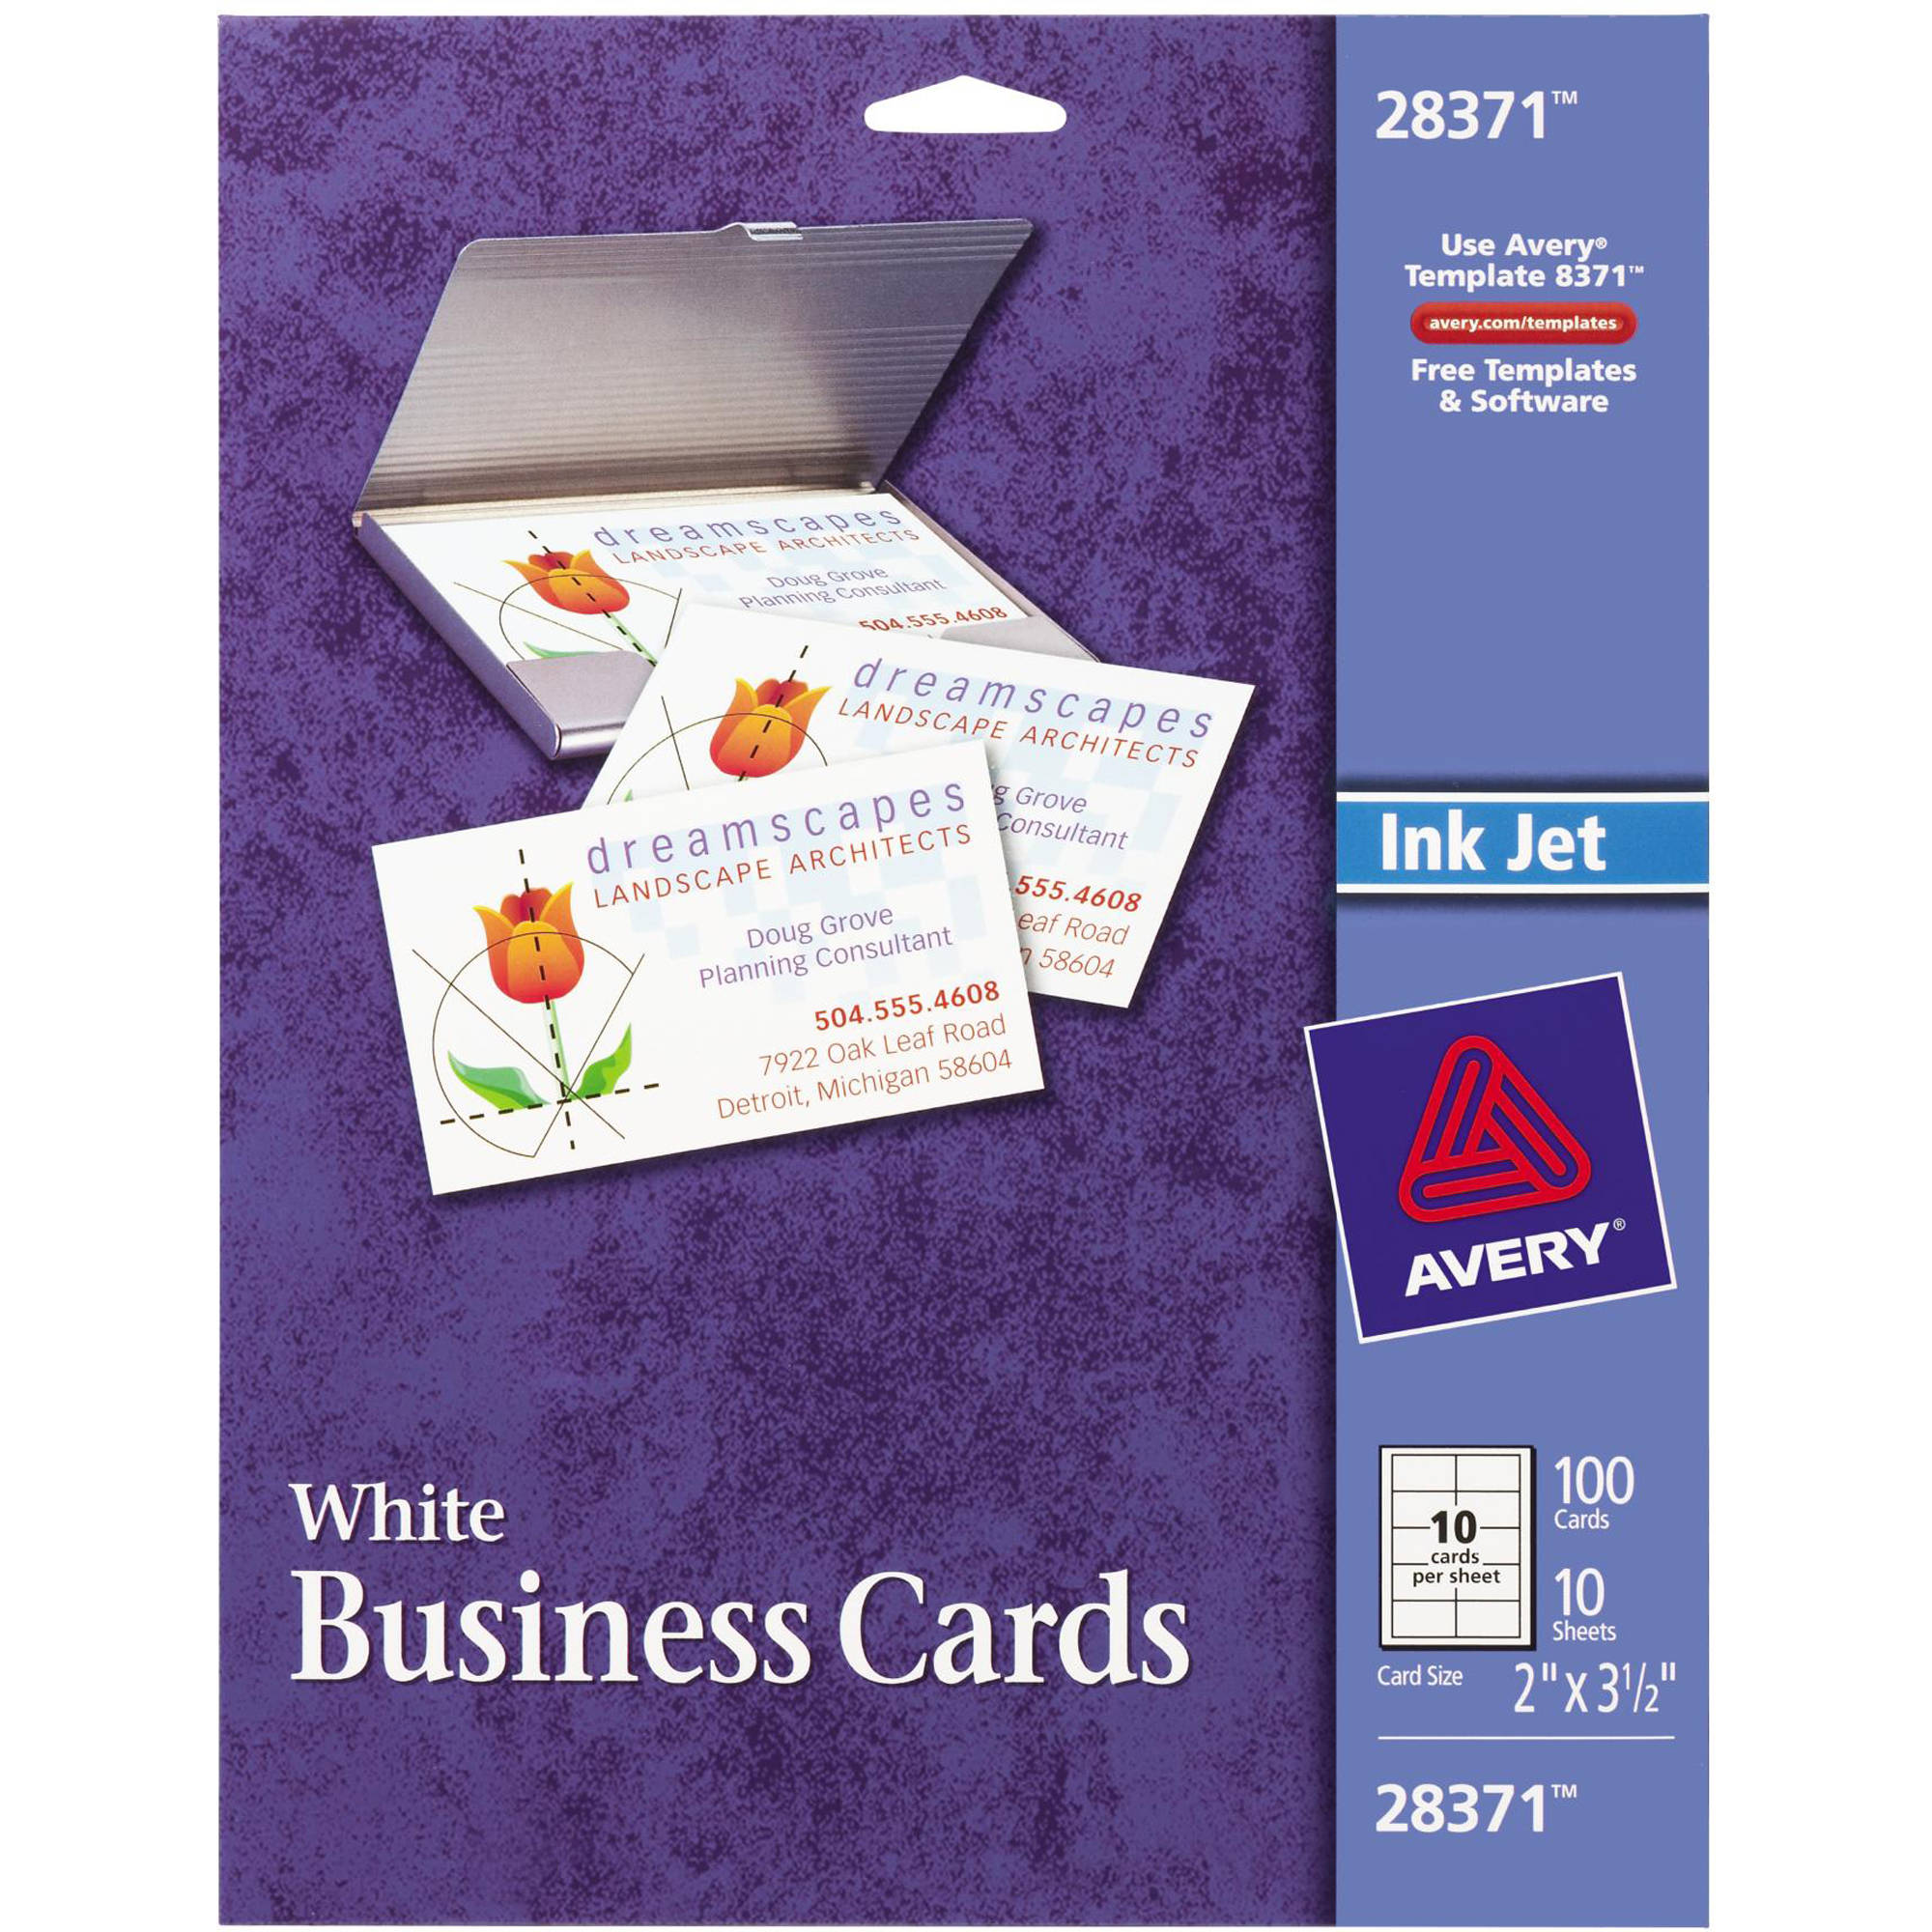 Averyr matte business cards for inkjet printers 28371 pack of 100 averyr matte business cards for inkjet printers 28371 pack of 100 walmart cheaphphosting